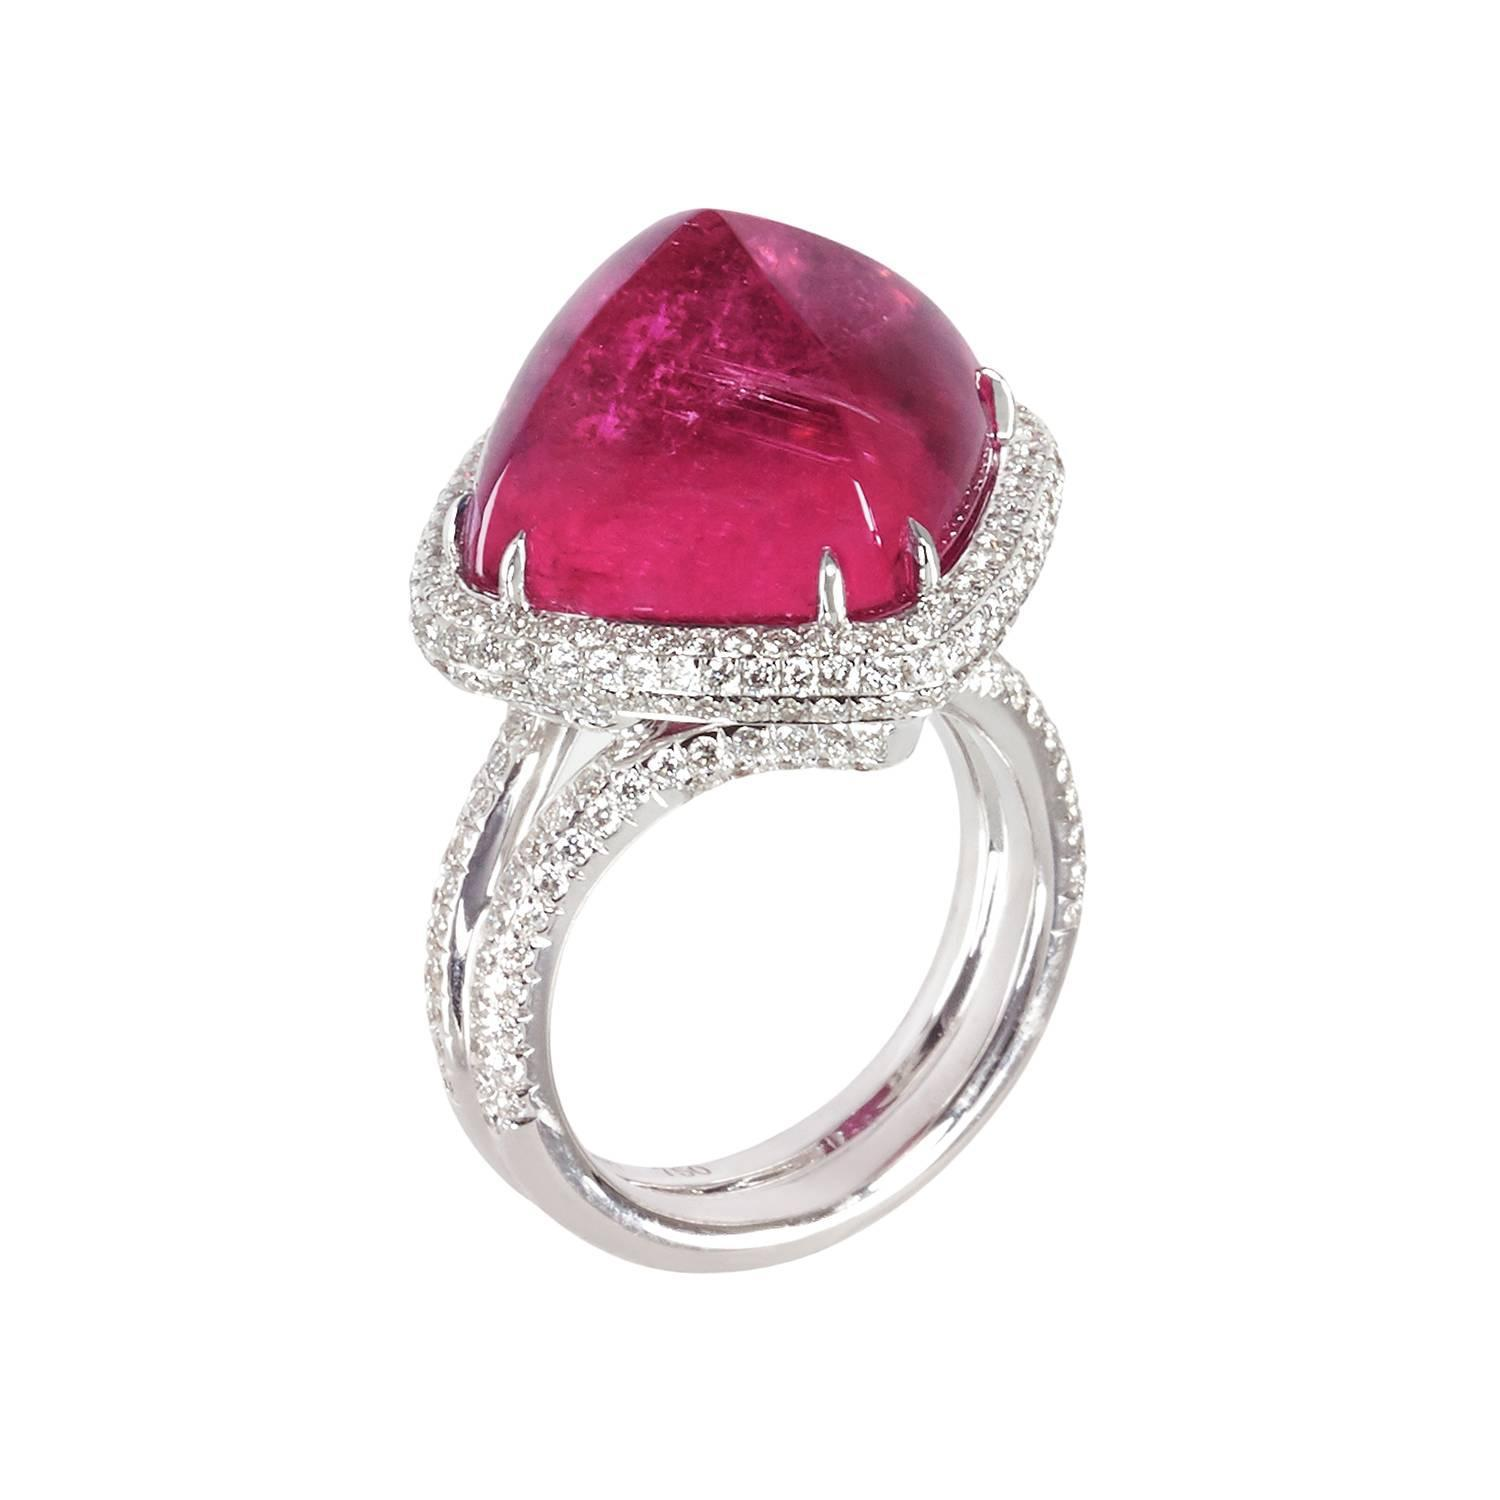 Rubellite Sugarloaf And Diamond Ring For Sale At 1stdibs